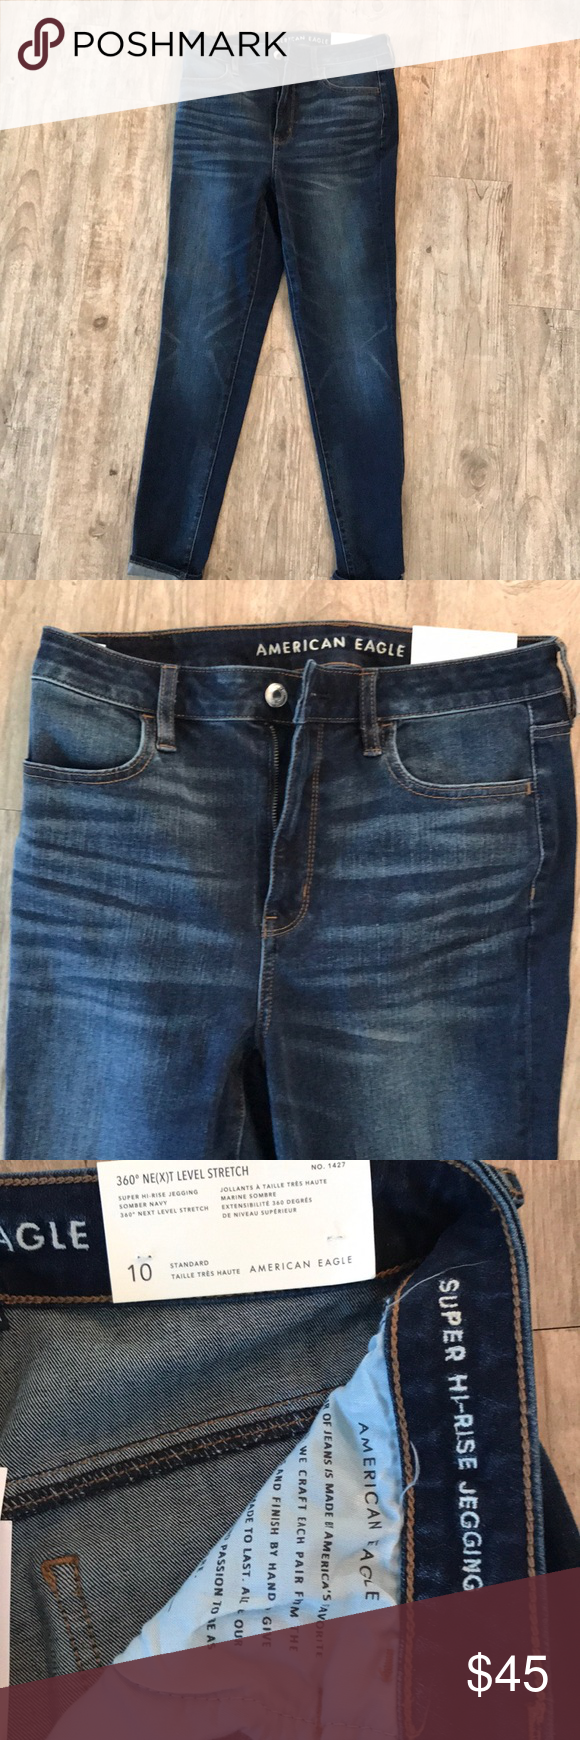 77d028d2fff12 American Eagle super hi-rise jegging American Eagle 360 Next level stretch  super hi-rise jegging. New with tags. Color is somber navy.